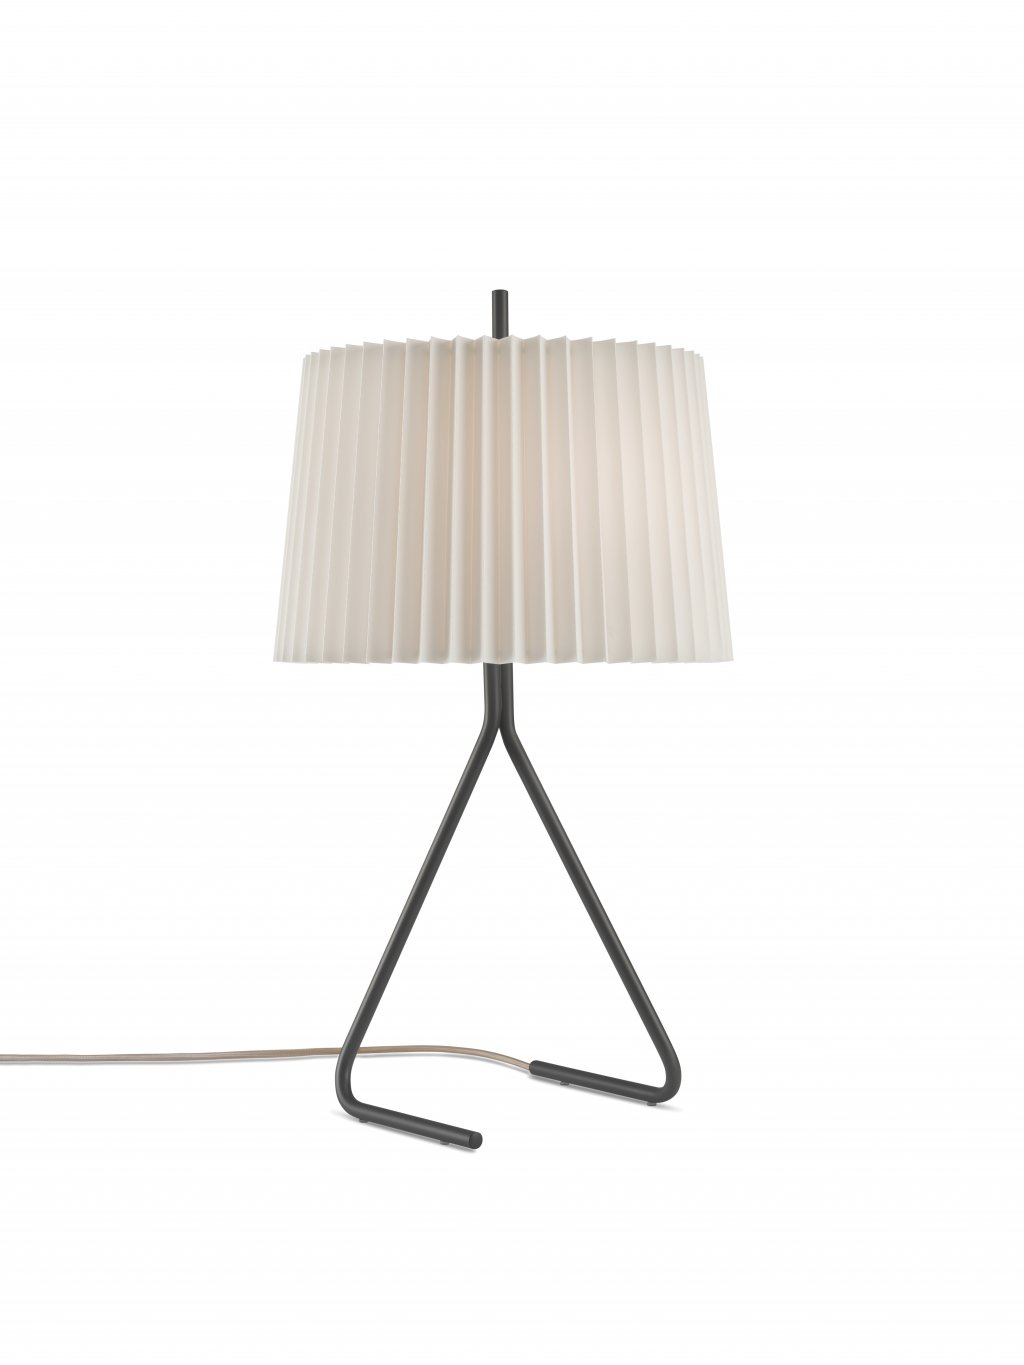 Fliegenbein Table Lamp, 1957